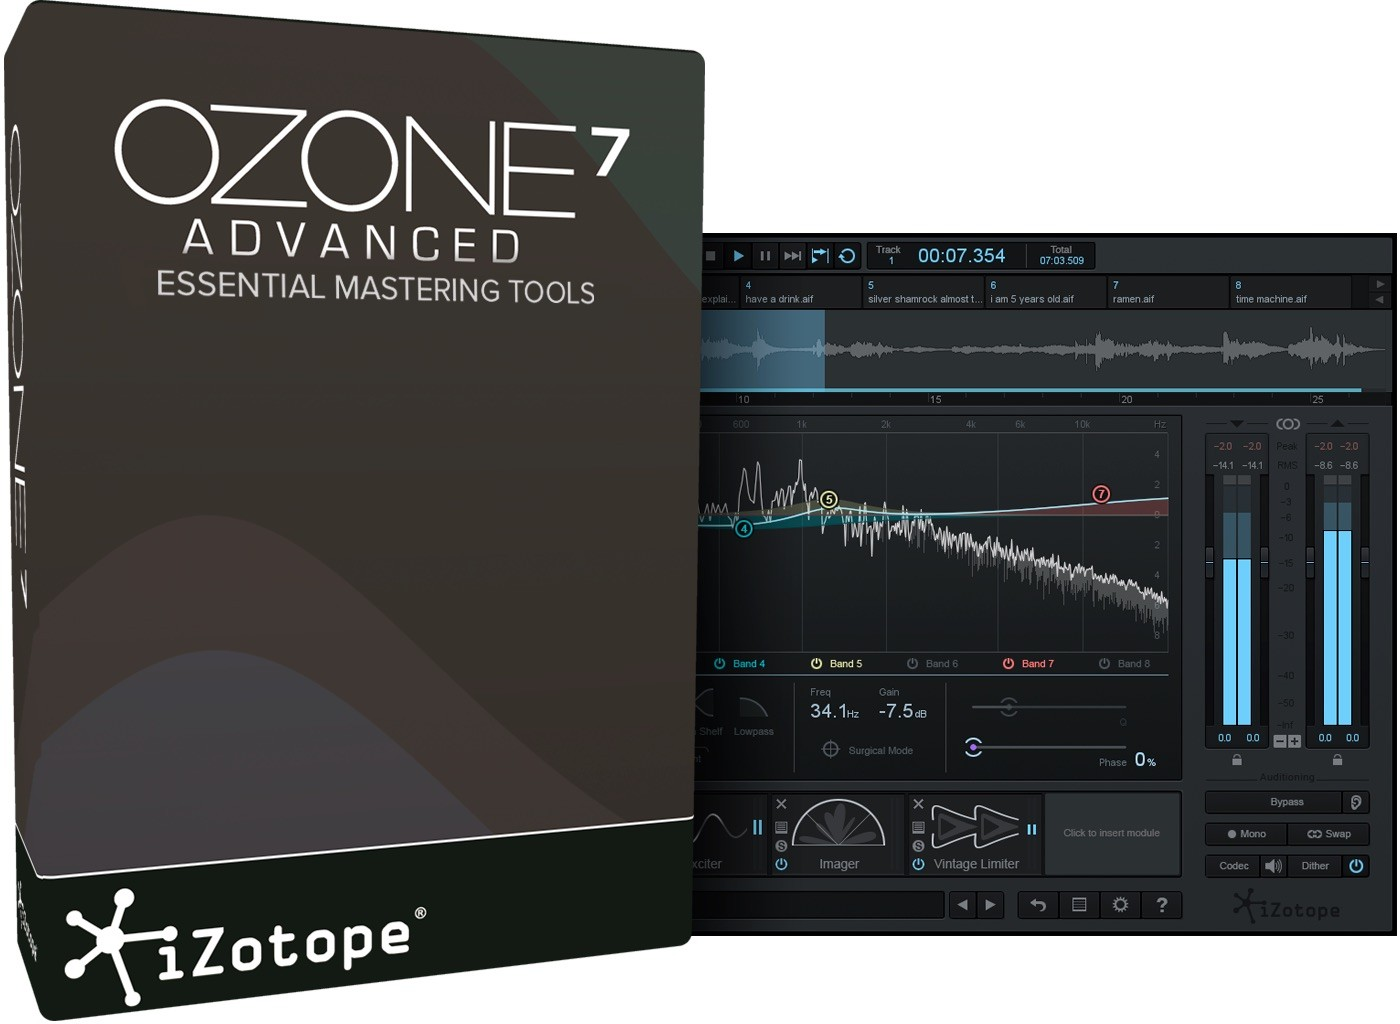 iZotope Ozone 7 Advanced Download Code